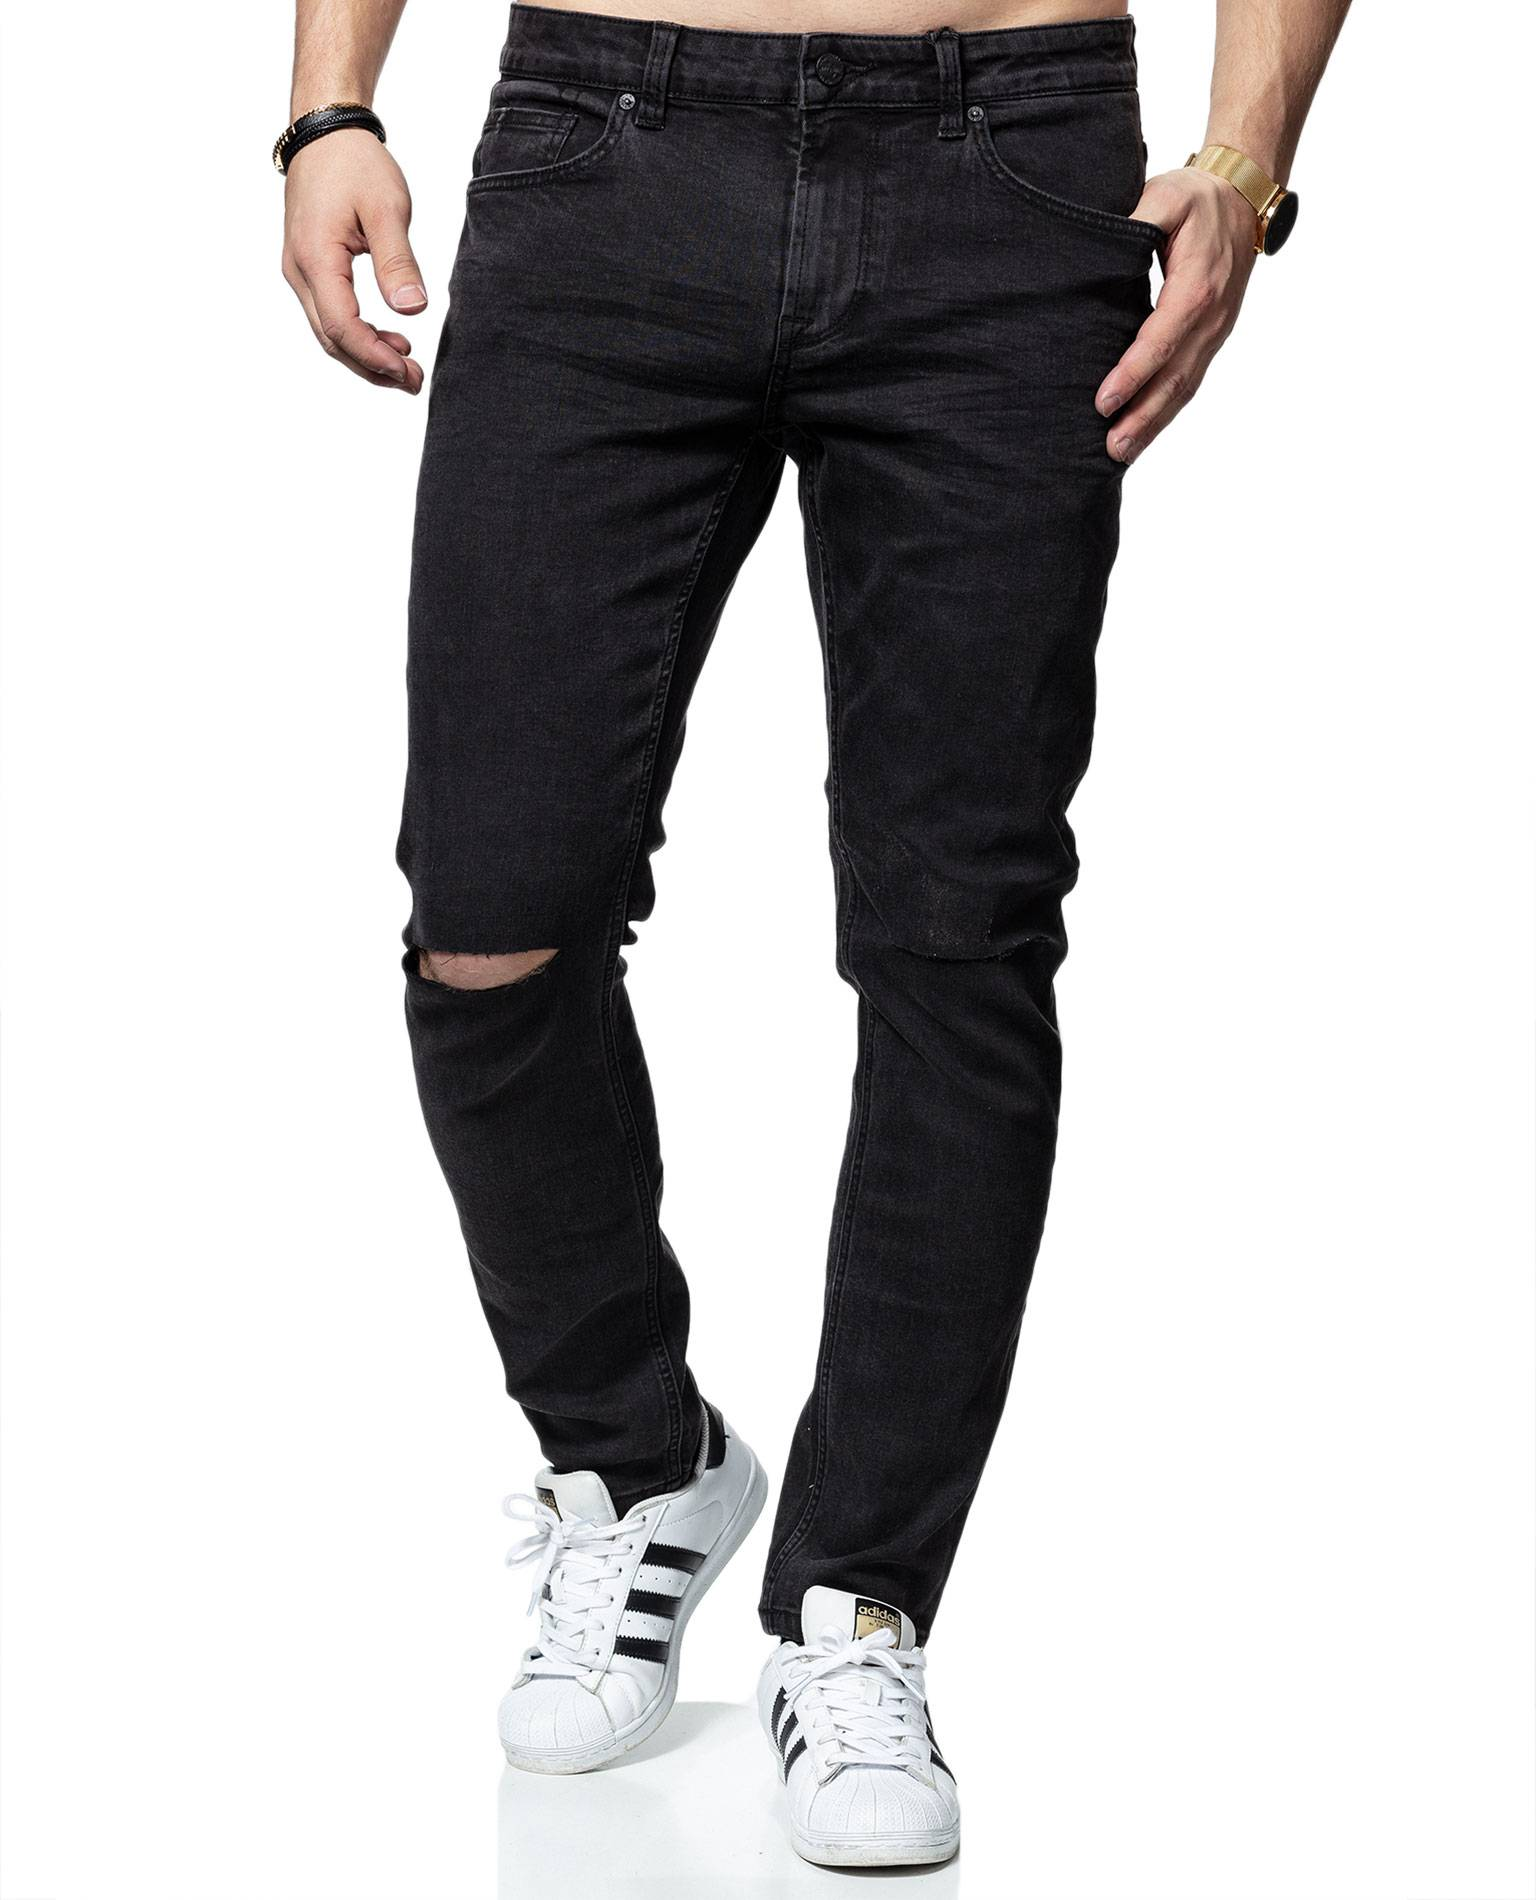 Warp Black Washed Knee-Cut L32 Only & Sons